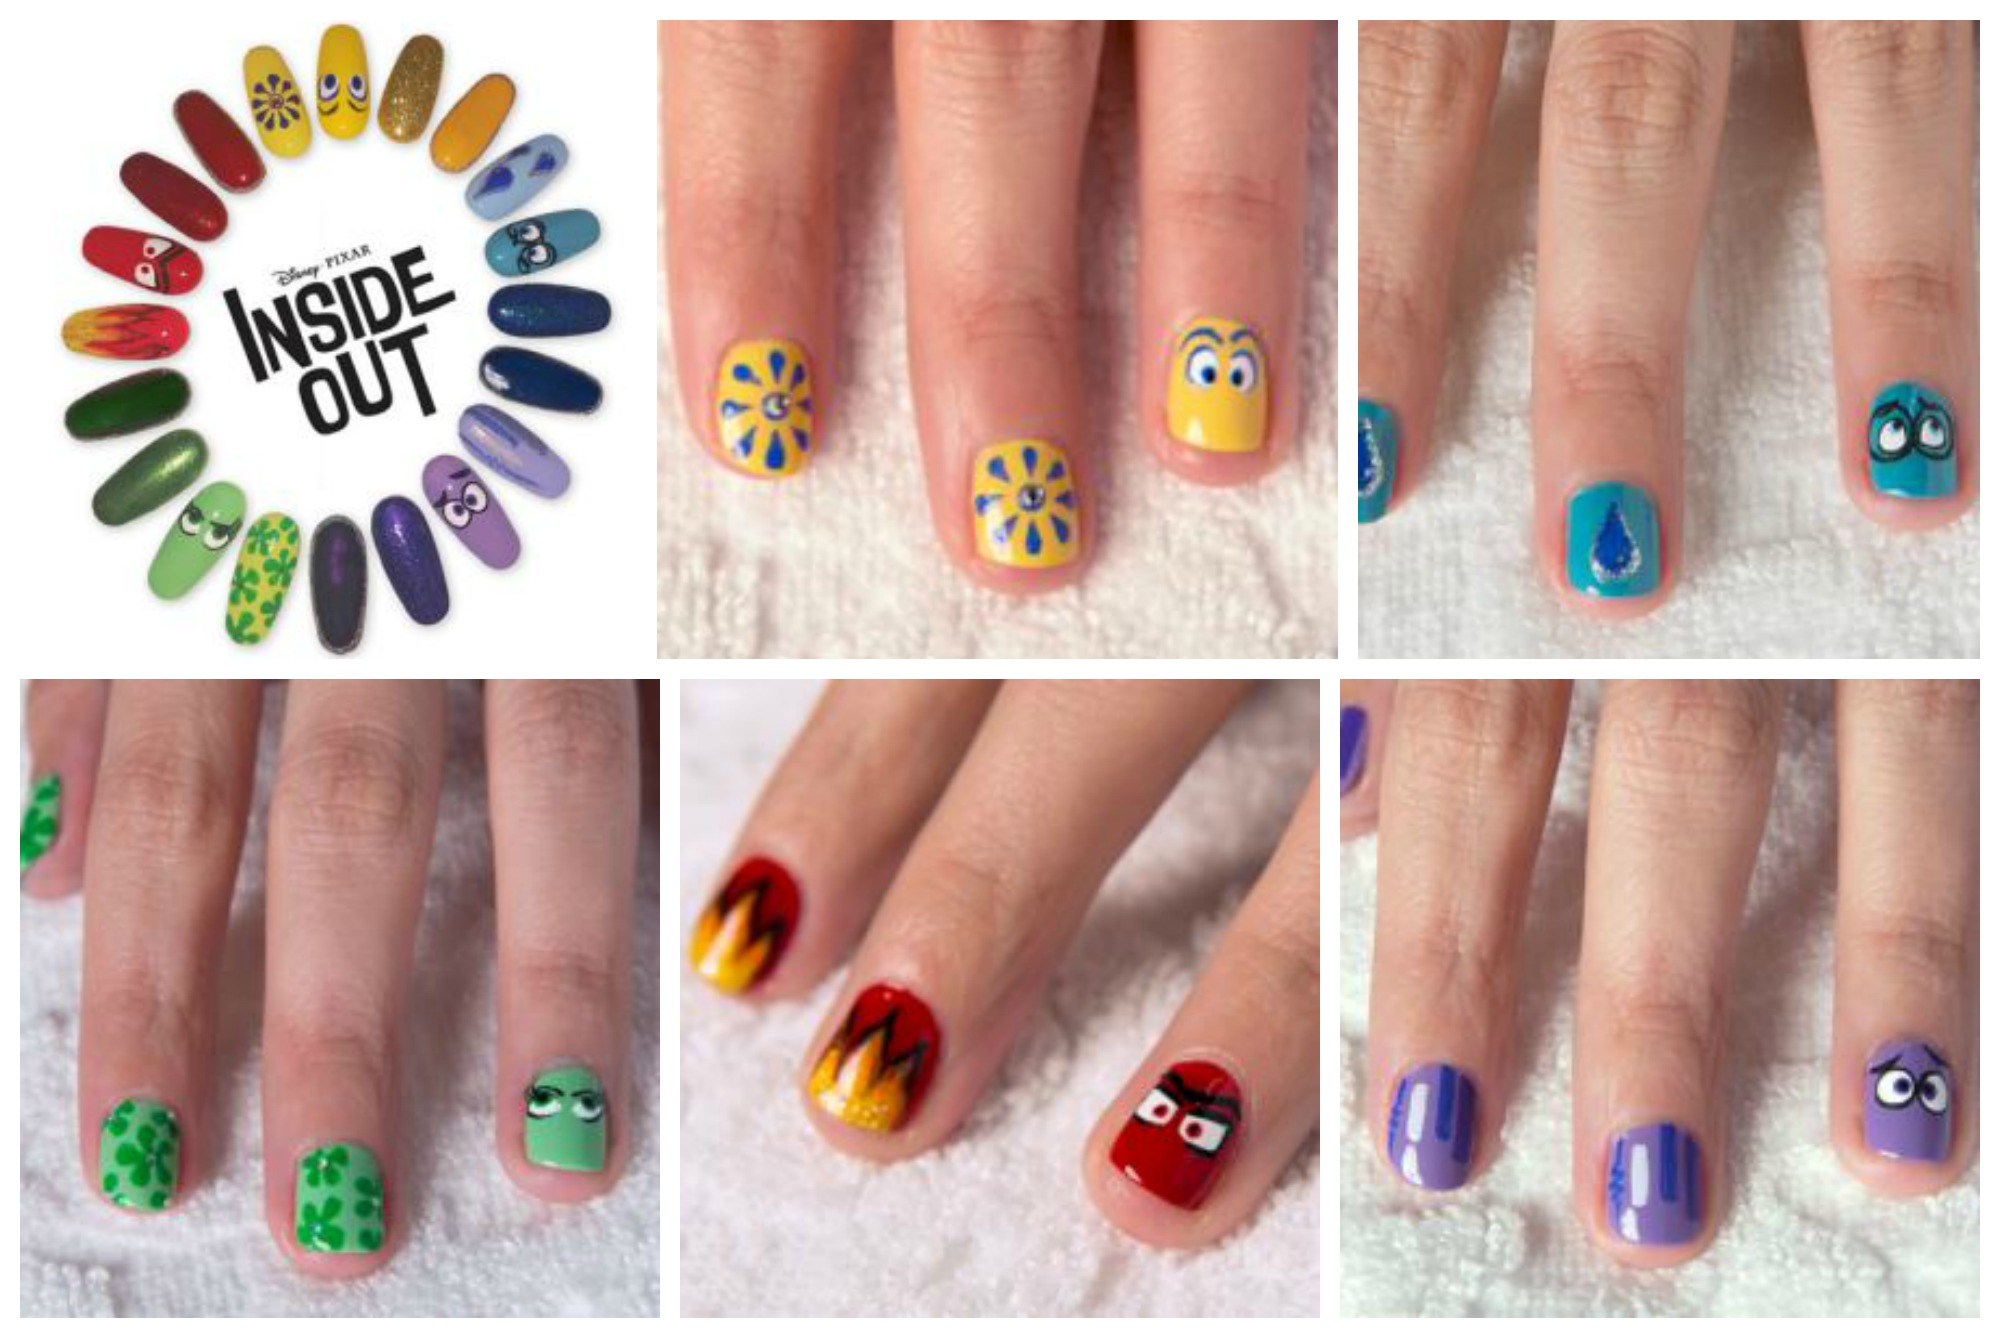 New INSIDE OUT Printable Activities! Nail Art, Board Game, & Memory Ball Craft